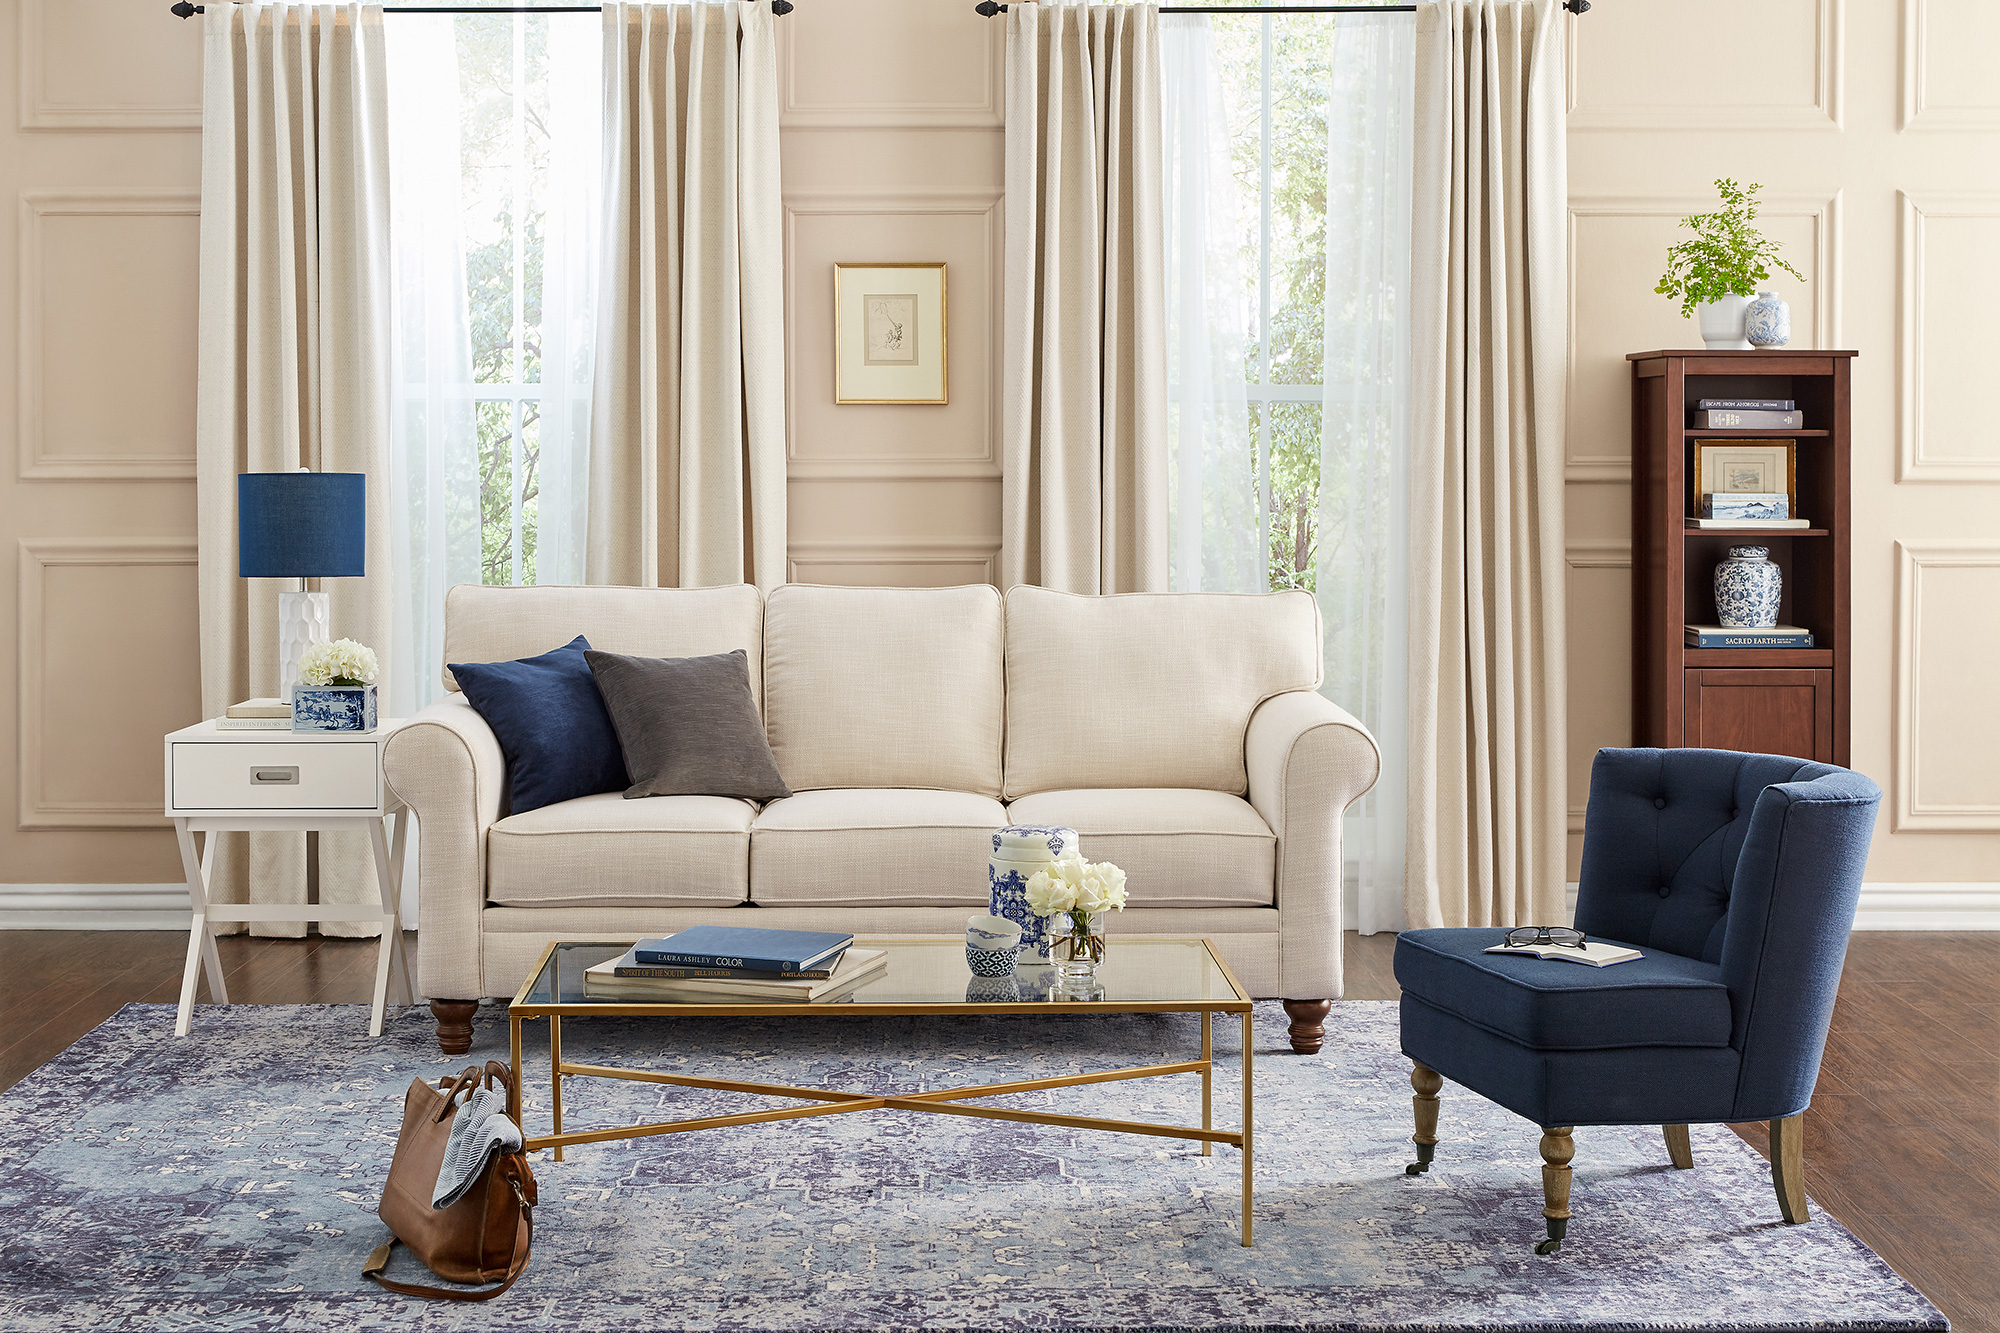 Holiday Shopping Sales For Mansfield Bed, Queen, Mohair, Graphite intended for Mansfield Graphite Velvet Sofa Chairs